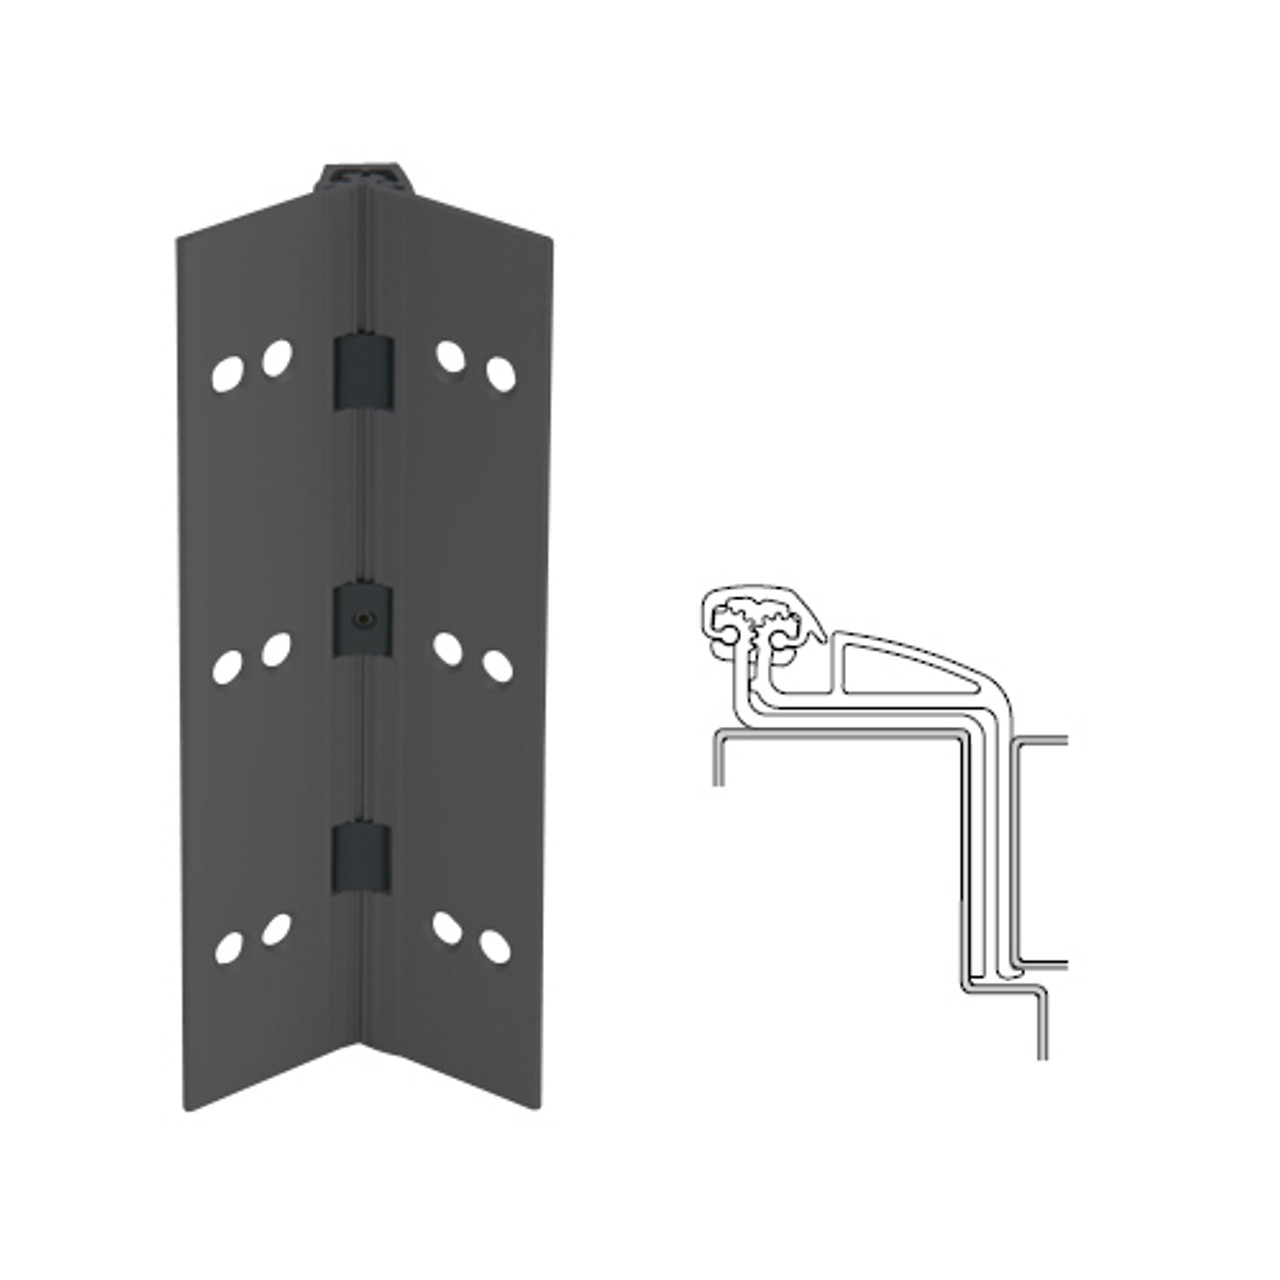 041XY-315AN-95-TEKWD IVES Full Mortise Continuous Geared Hinges with Wood Screws in Anodized Black